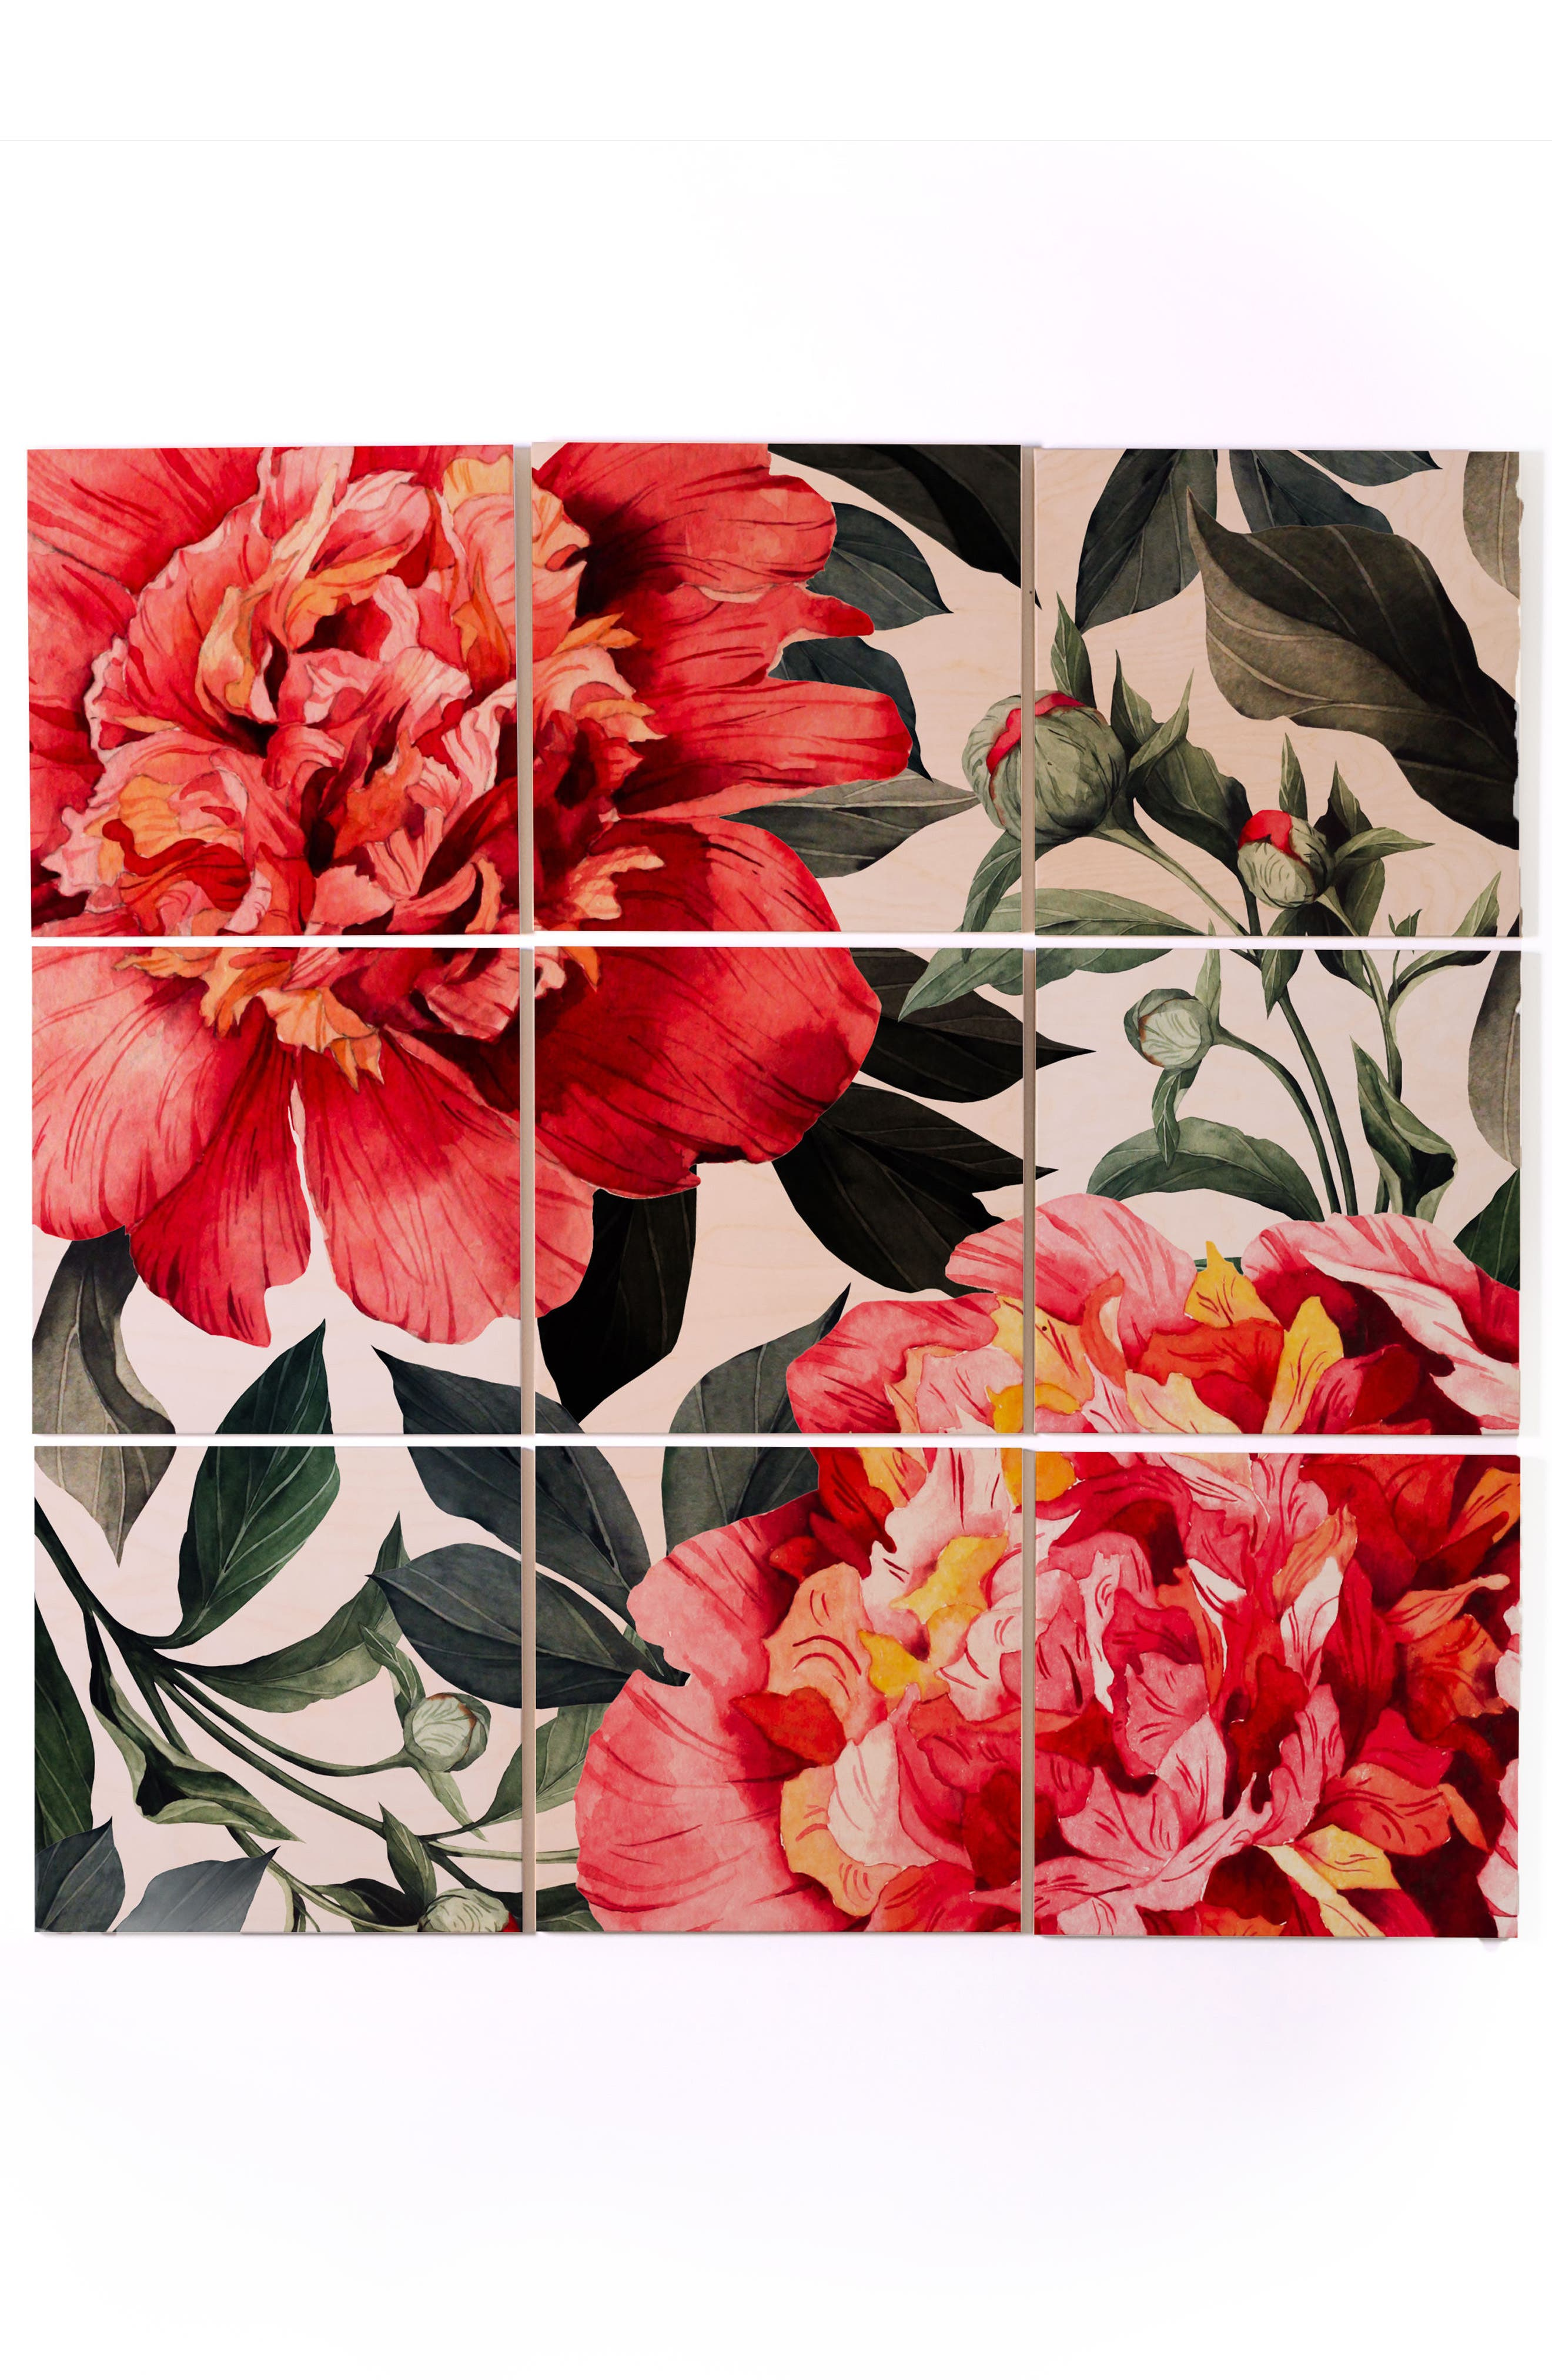 Deny Designs Red Flowers 9-Piece Wood Wall Mural